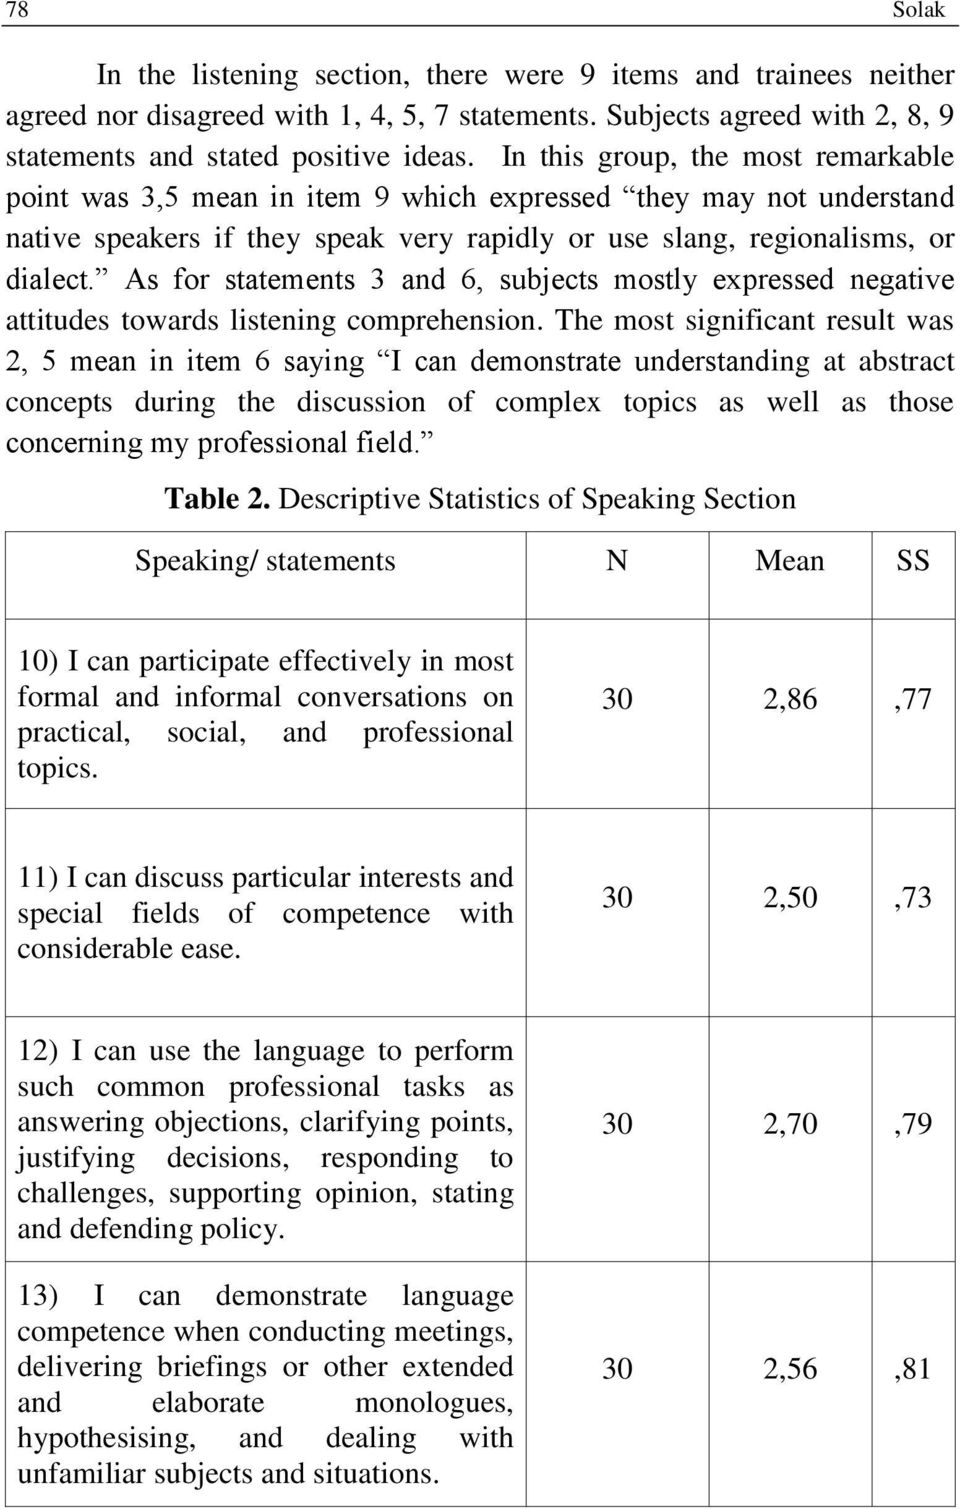 As for statements 3 and 6, subjects mostly expressed negative attitudes towards listening comprehension.